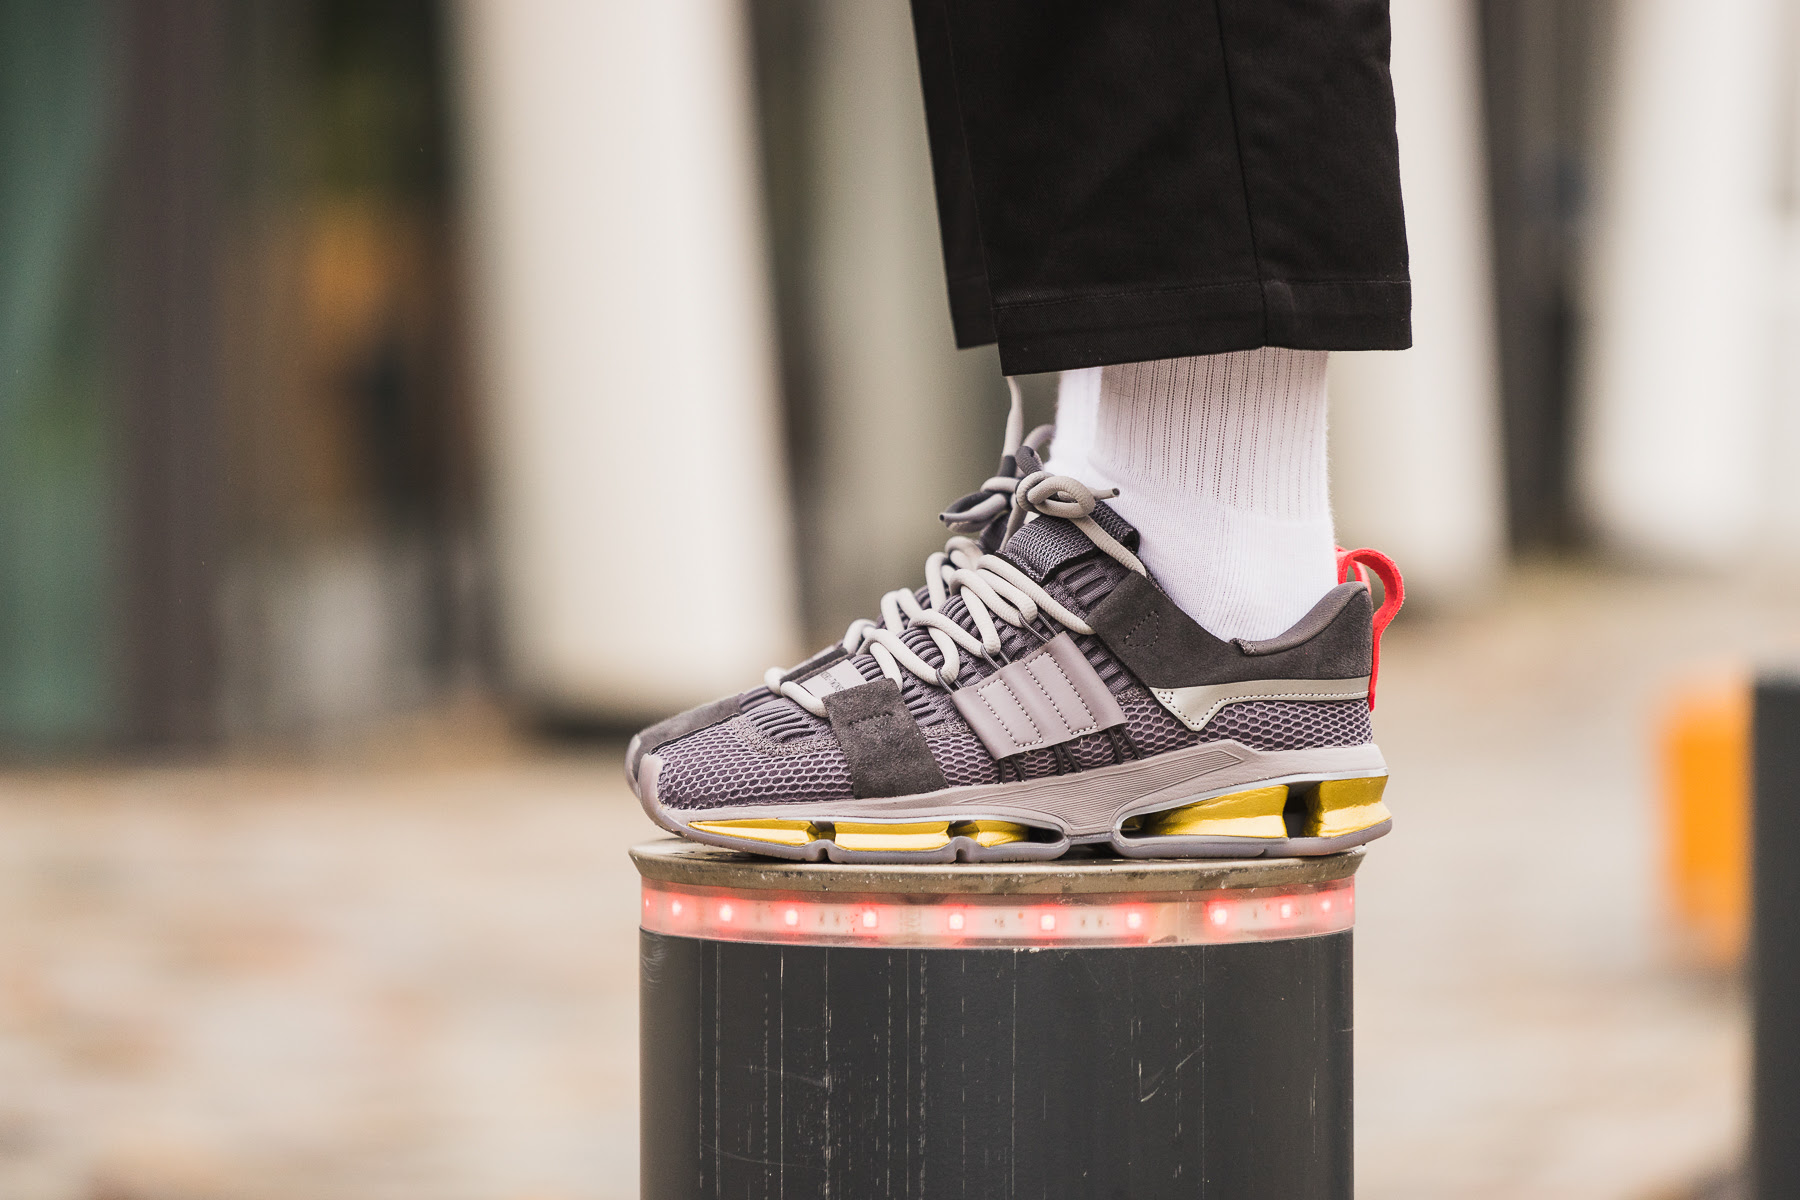 on sale 59ced d8286 ... Find the kicks at adidas Consortium dealers like Berlin based Overkill  on the Wednesday, the adidas Consortium Twinstrike ADV Y2K adiStar Comp ...